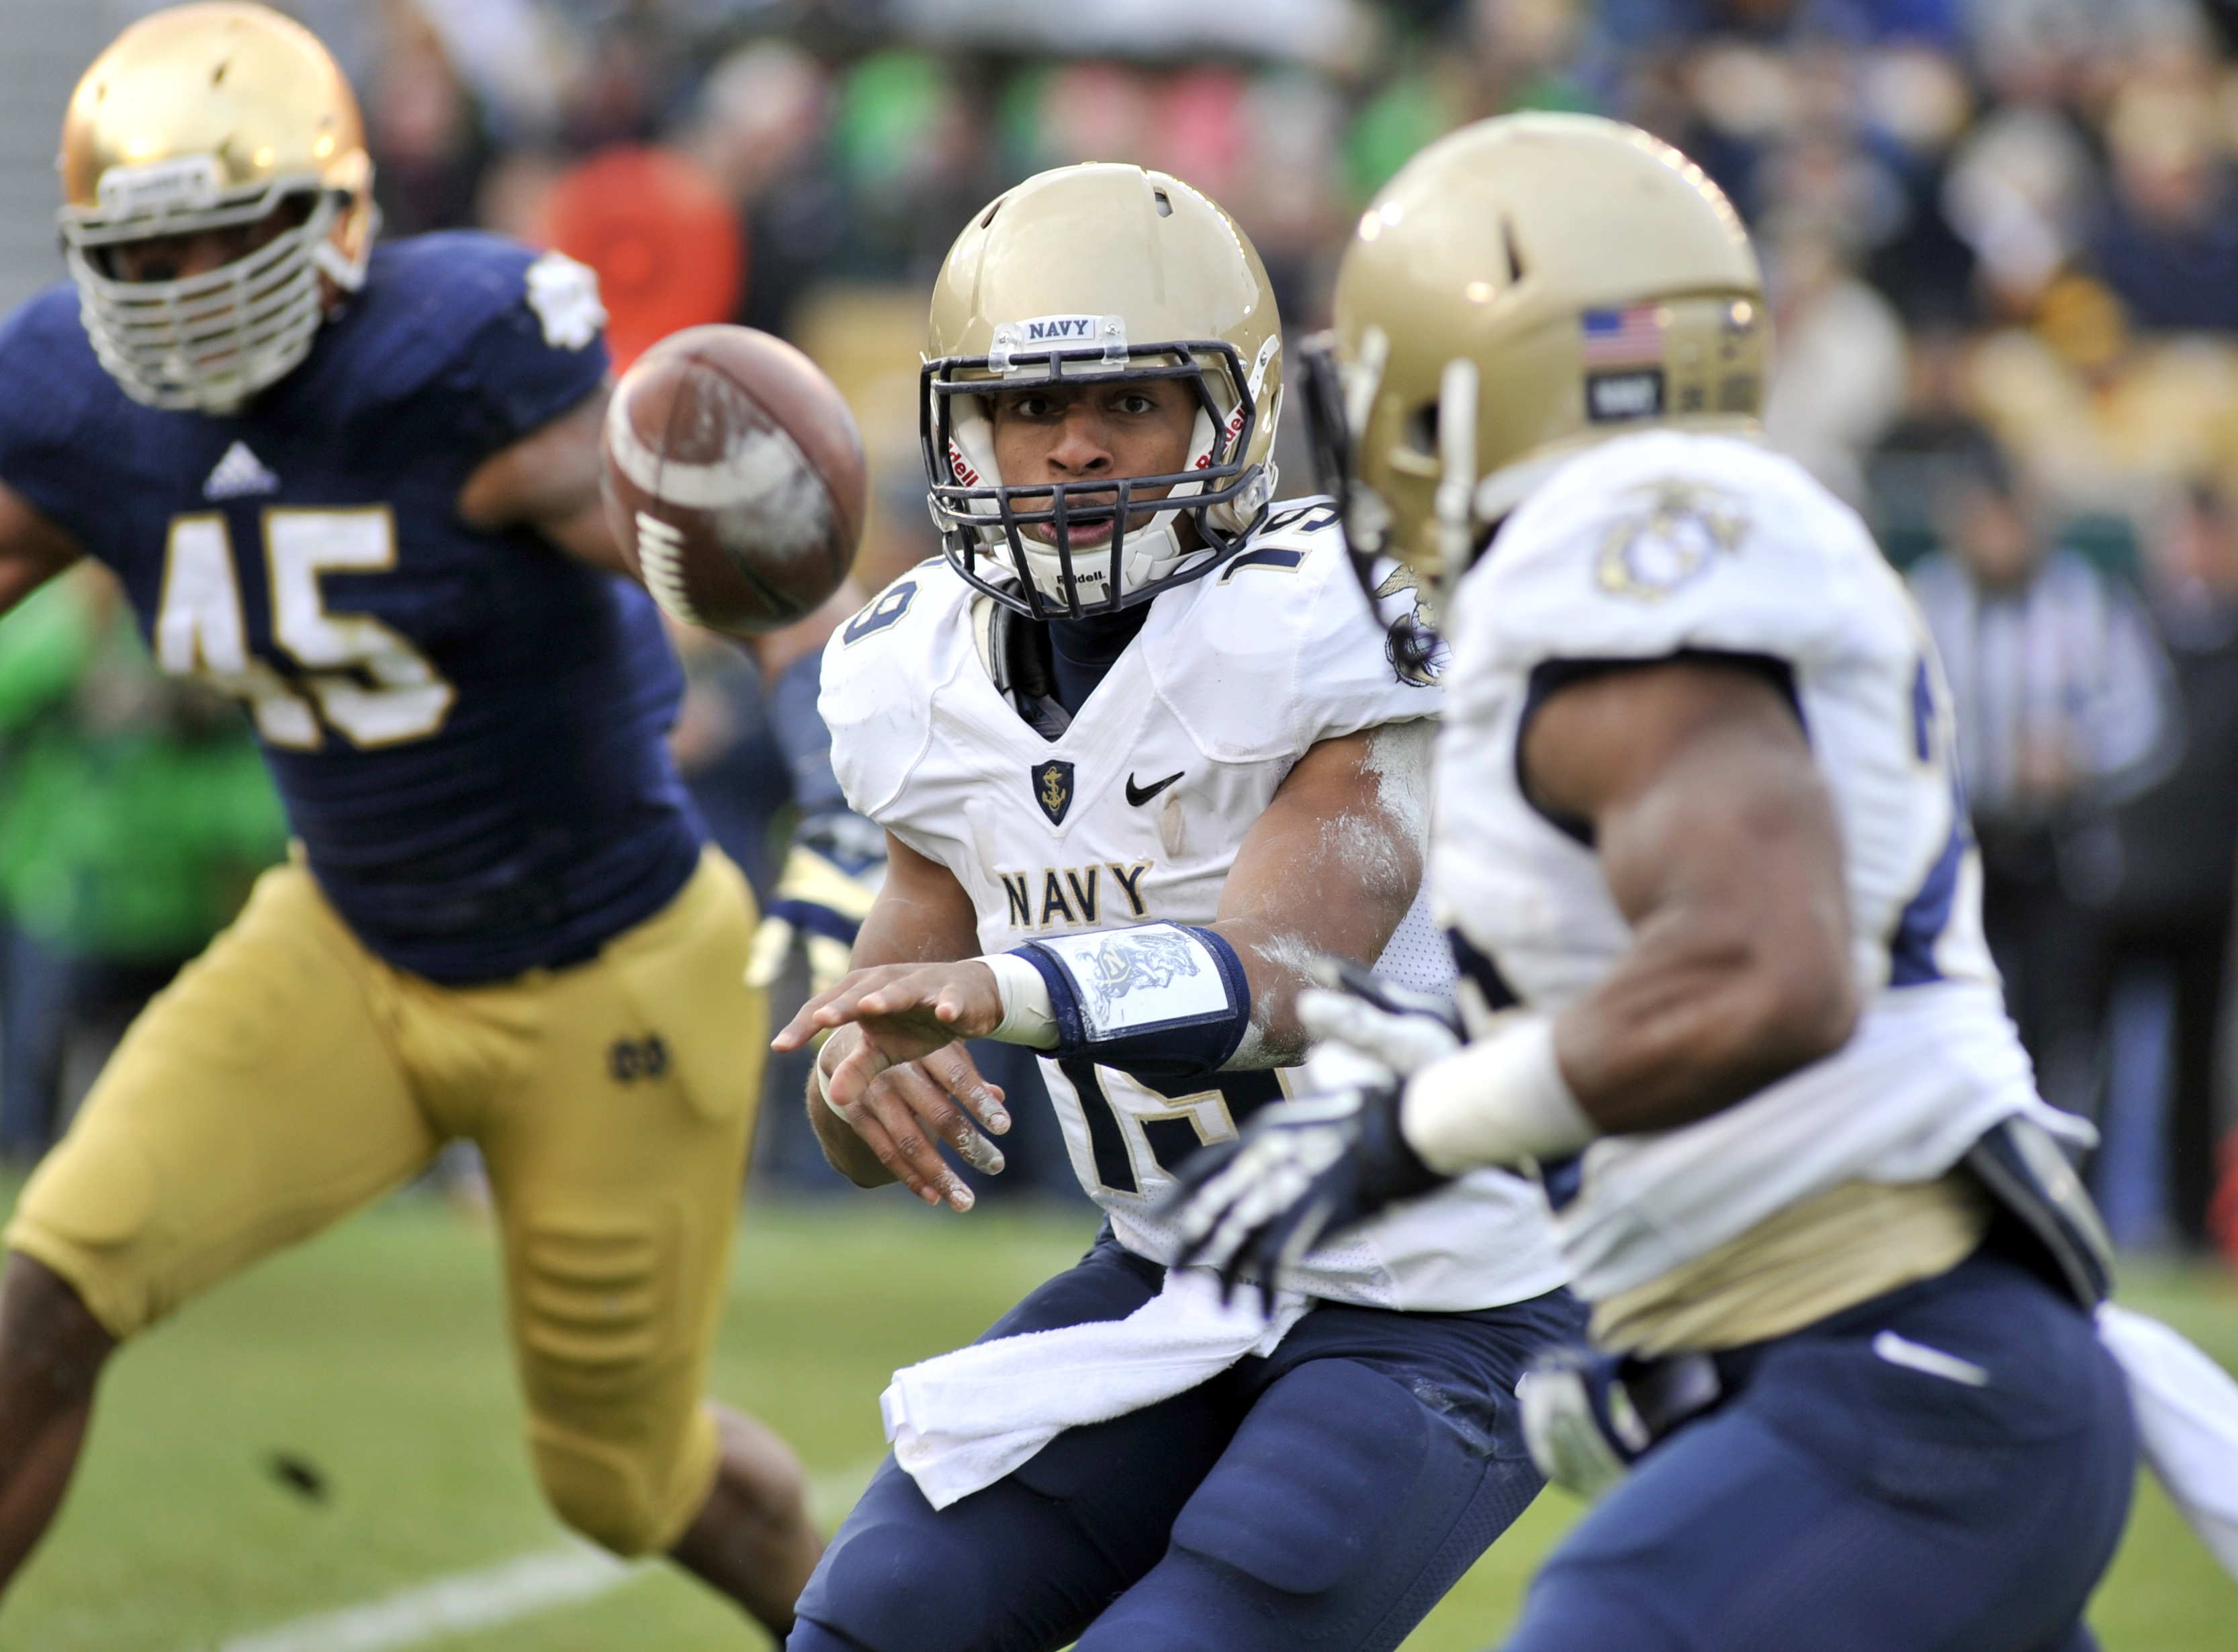 Navy quarterback Keenan Reynolds pitches the the ball during a NCAA college football game against Notre Dame, Saturday, Nov. 2, 2013, in South Bend, Ind. (AP Photo/Joe Raymond)